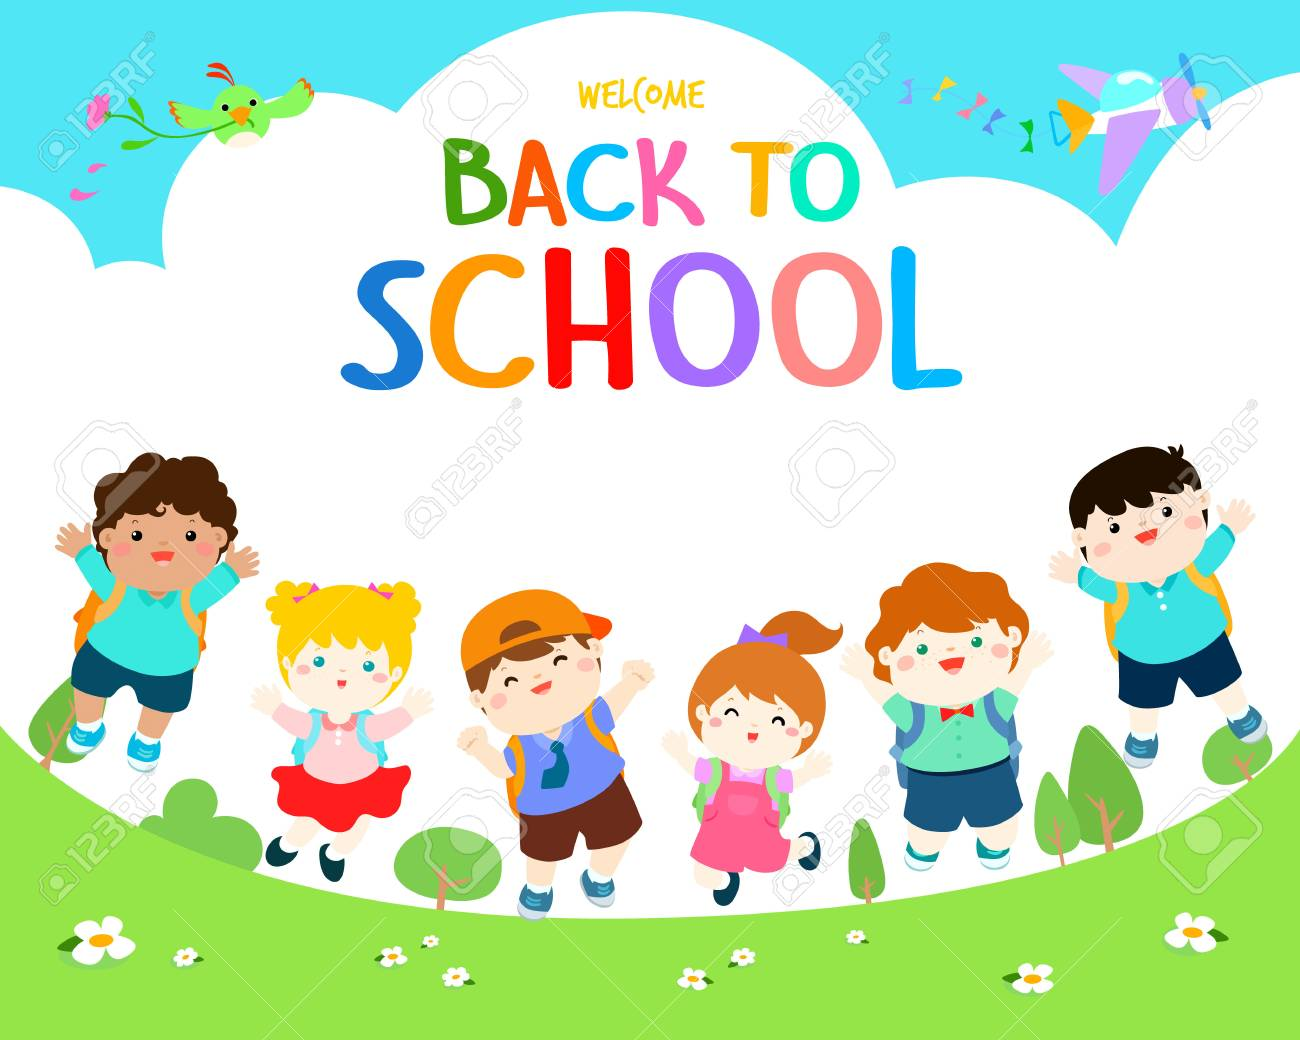 Welcome Back To School Vector Illustration Cute Multiracial Children Royalty Free Cliparts Vectors And Stock Illustration Image 92346209